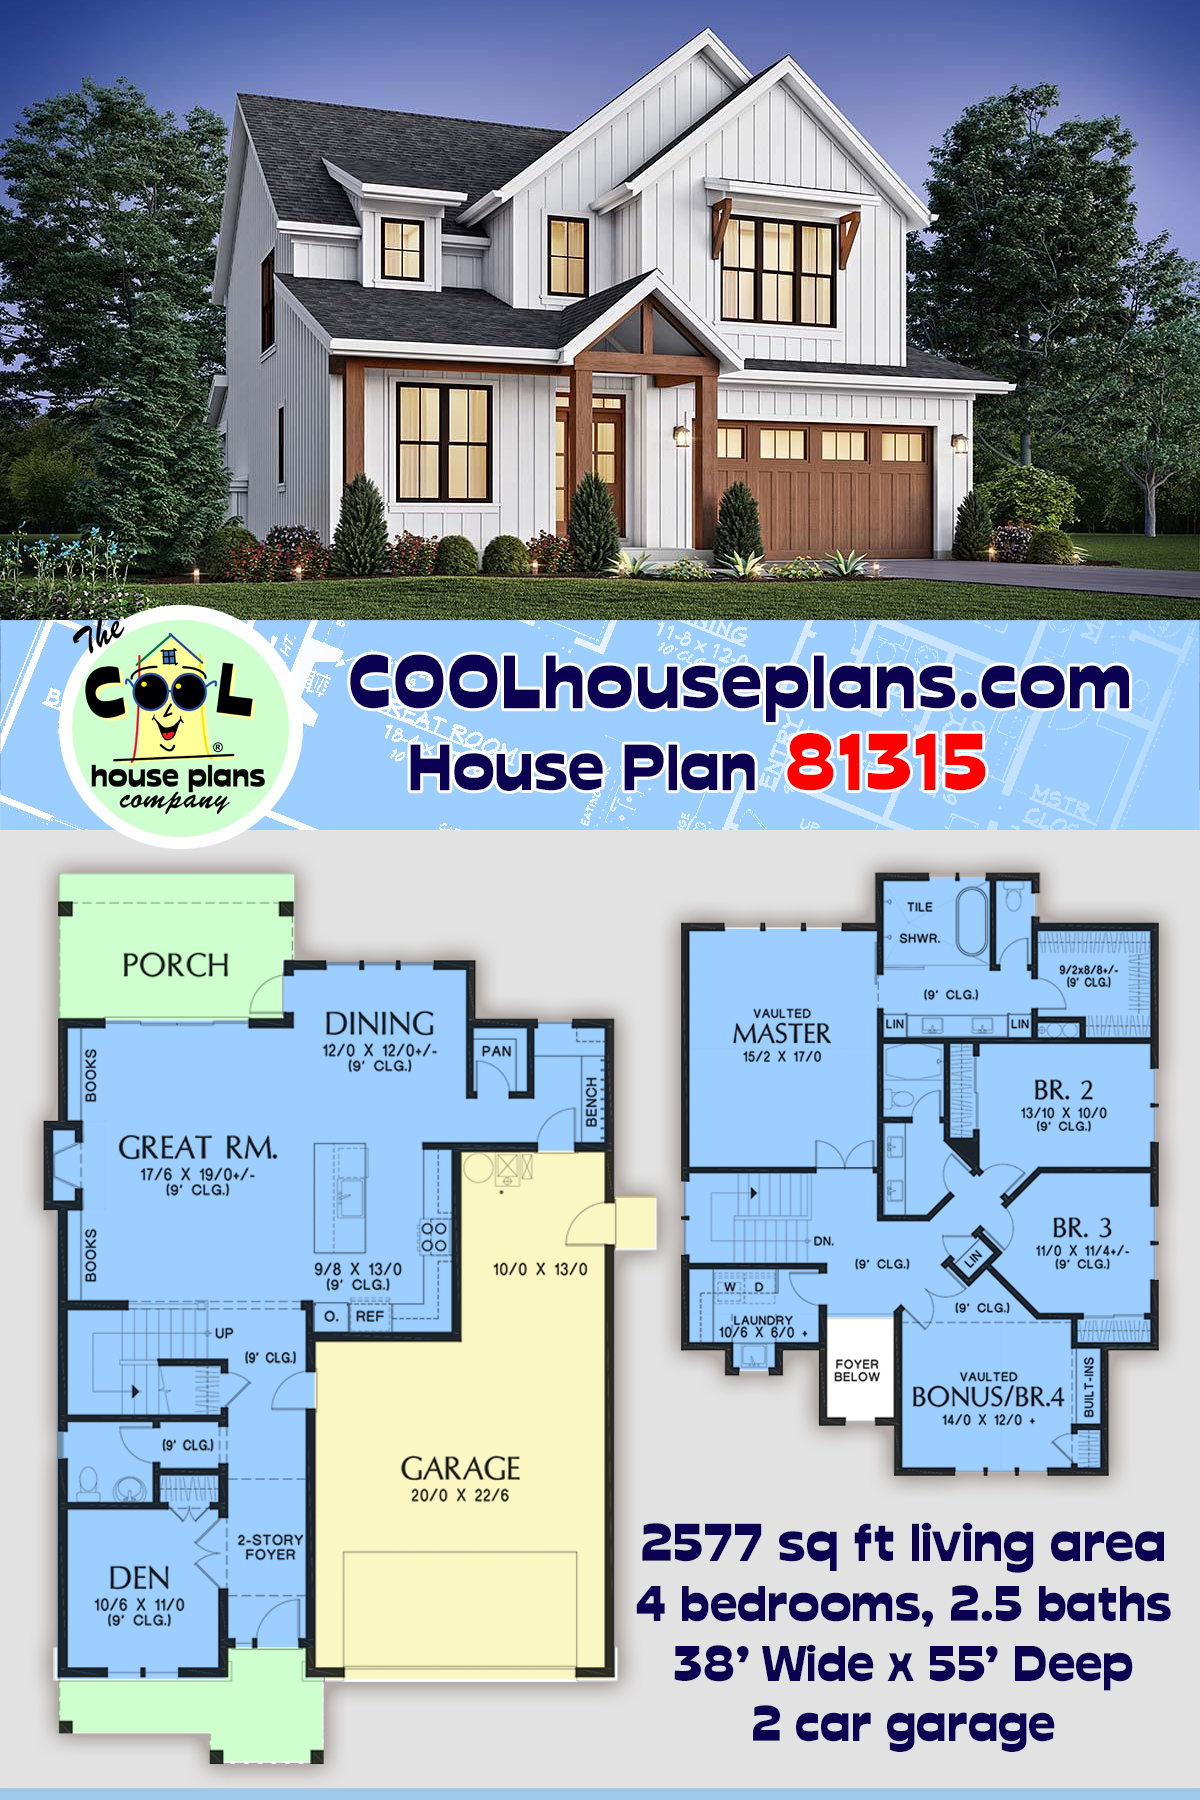 Contemporary, Cottage, Country, Farmhouse House Plan 81315 with 4 Beds, 3 Baths, 2 Car Garage